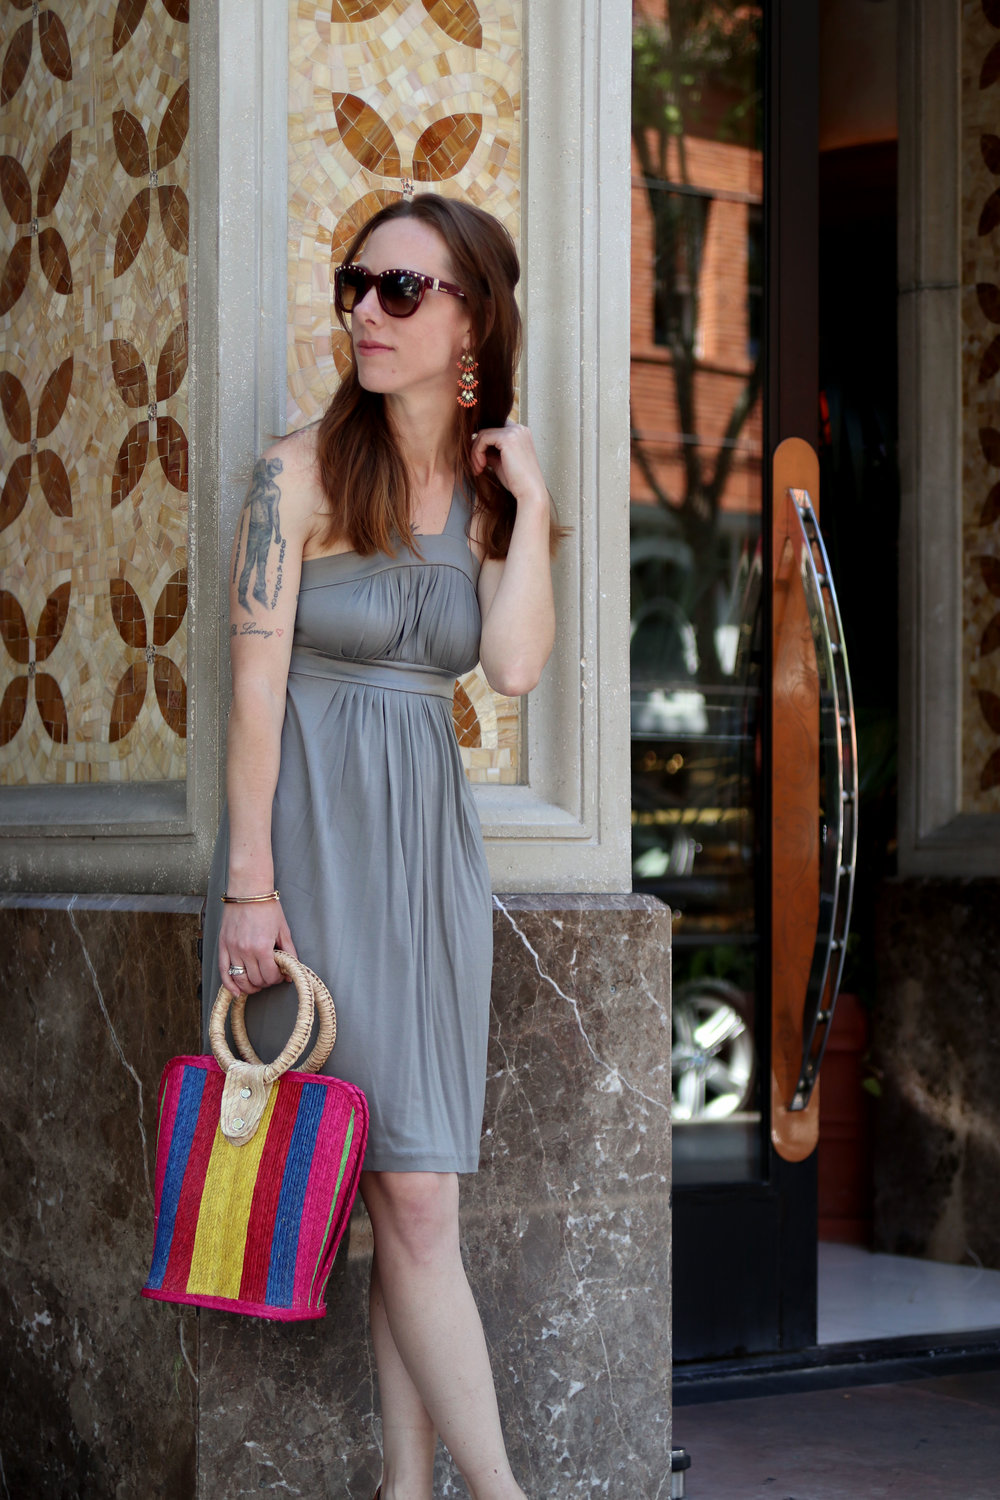 banana-republic-sundress.jpg